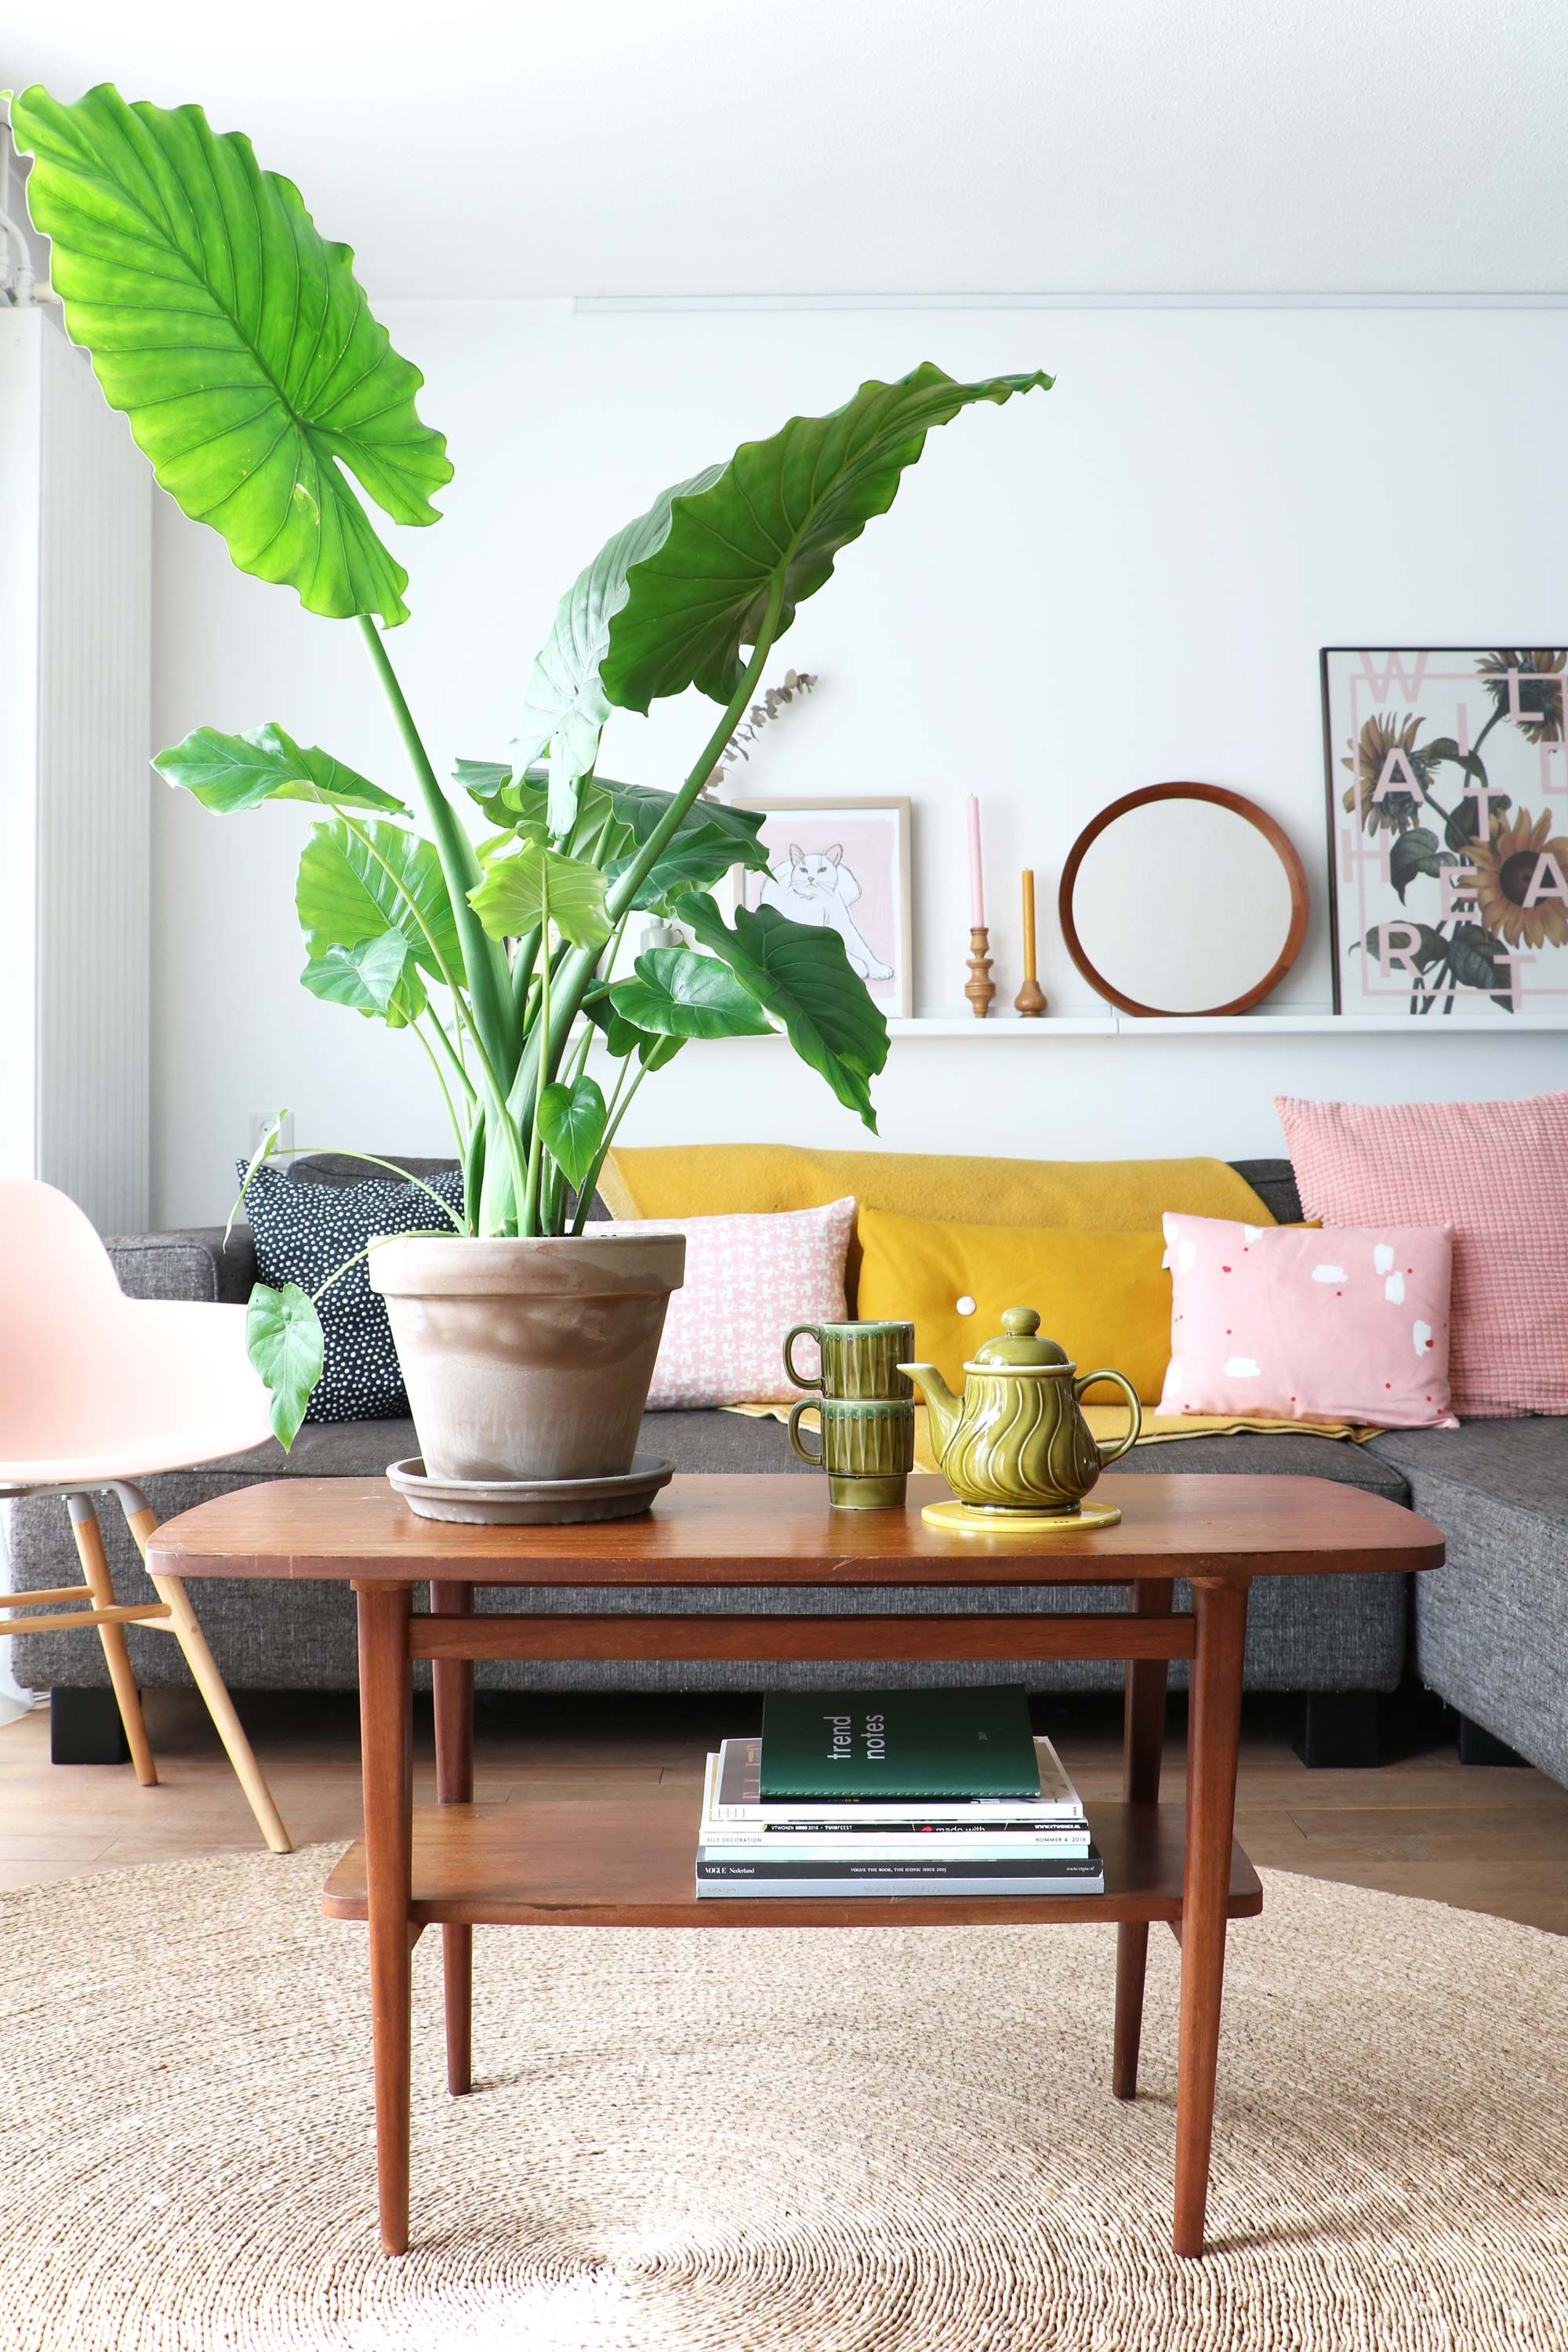 my attic plant woonkamer   plants indoor   Pinterest   Home, Living ...